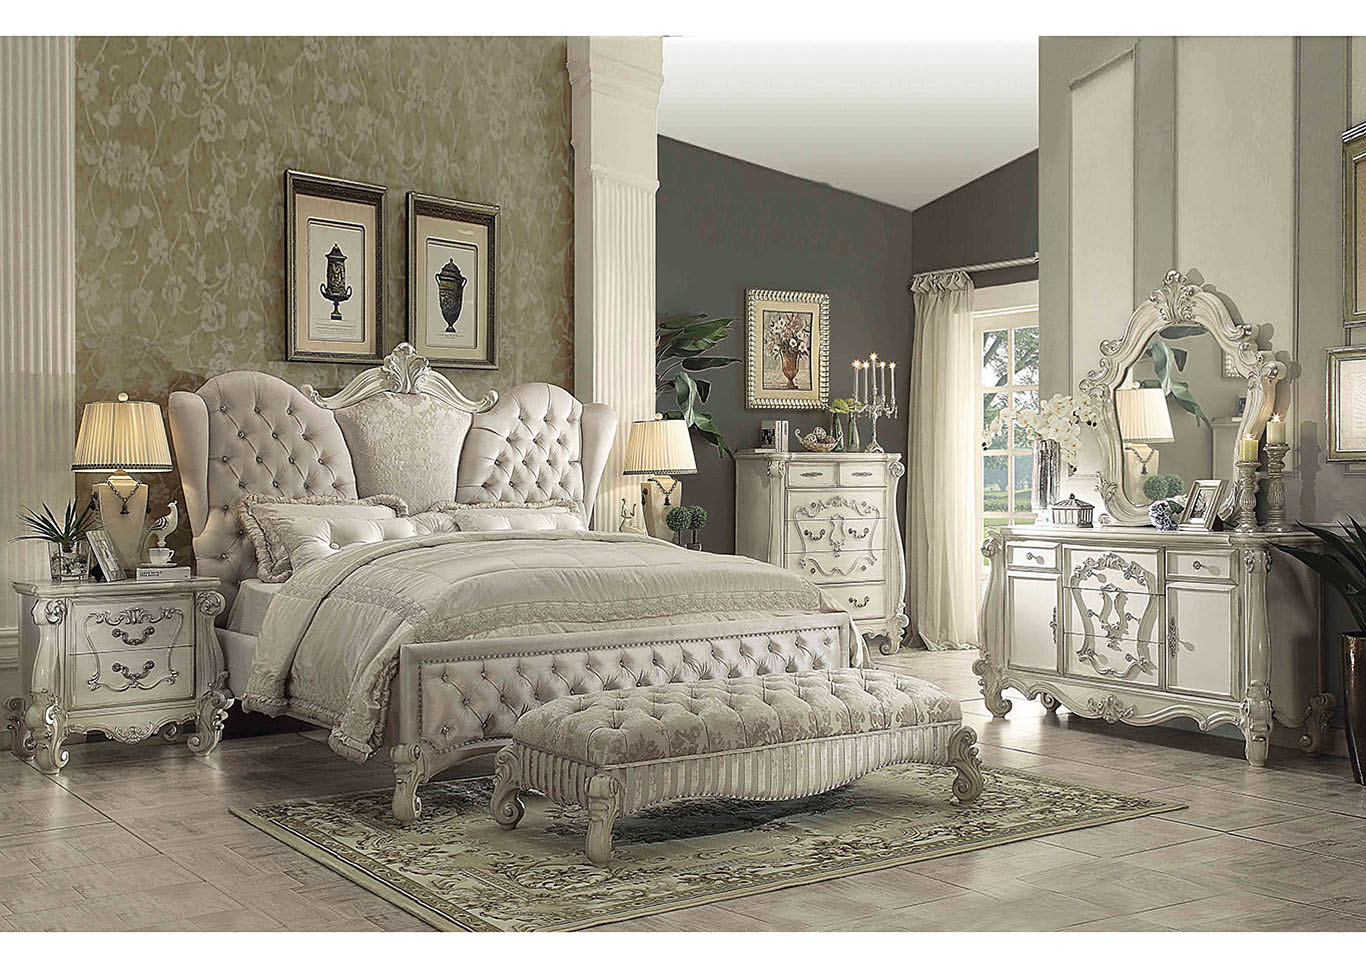 Versailles Ivory Velvet and Bone White Queen Upholstered Bed,Acme